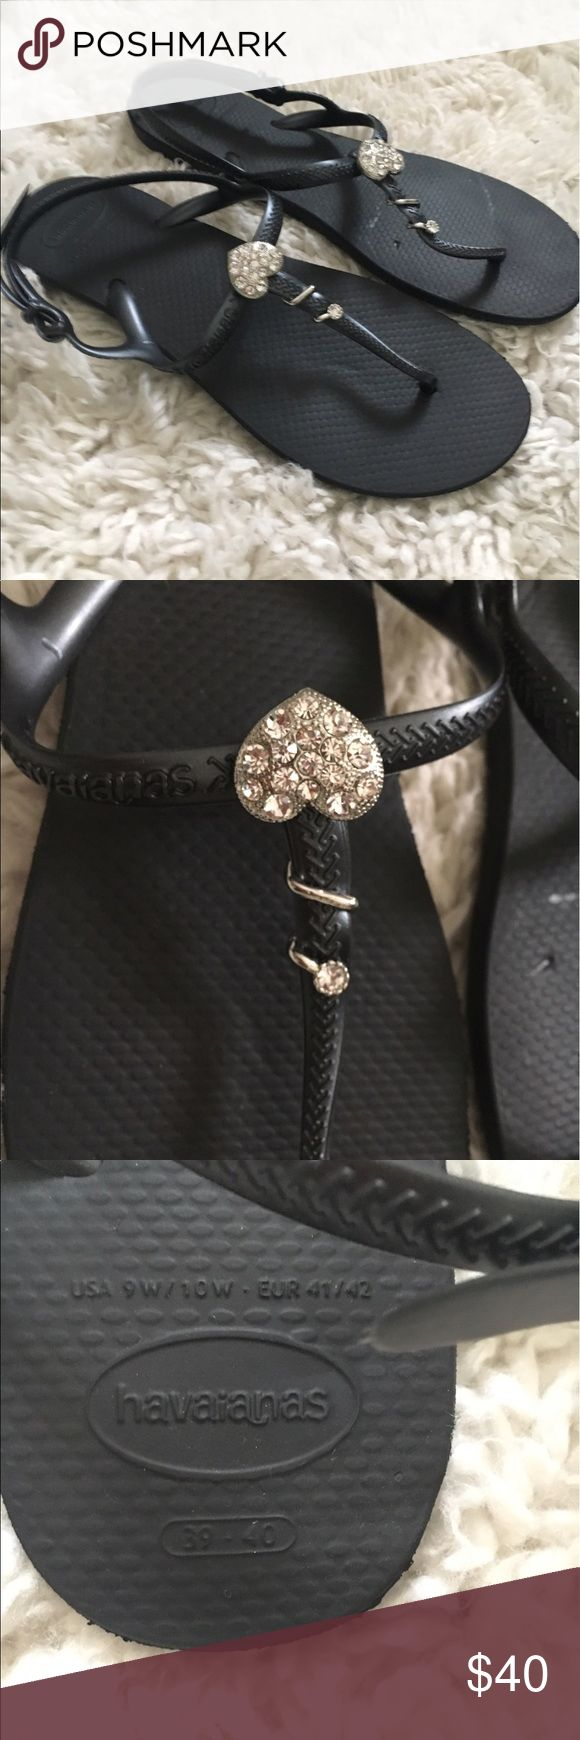 Black havaianas with silver heart bedazzle Black havaiana sandals, rubber size 9, worn once, pretty sparkle silver heart wrap around the tong of the sandal Havaianas Shoes Sandals